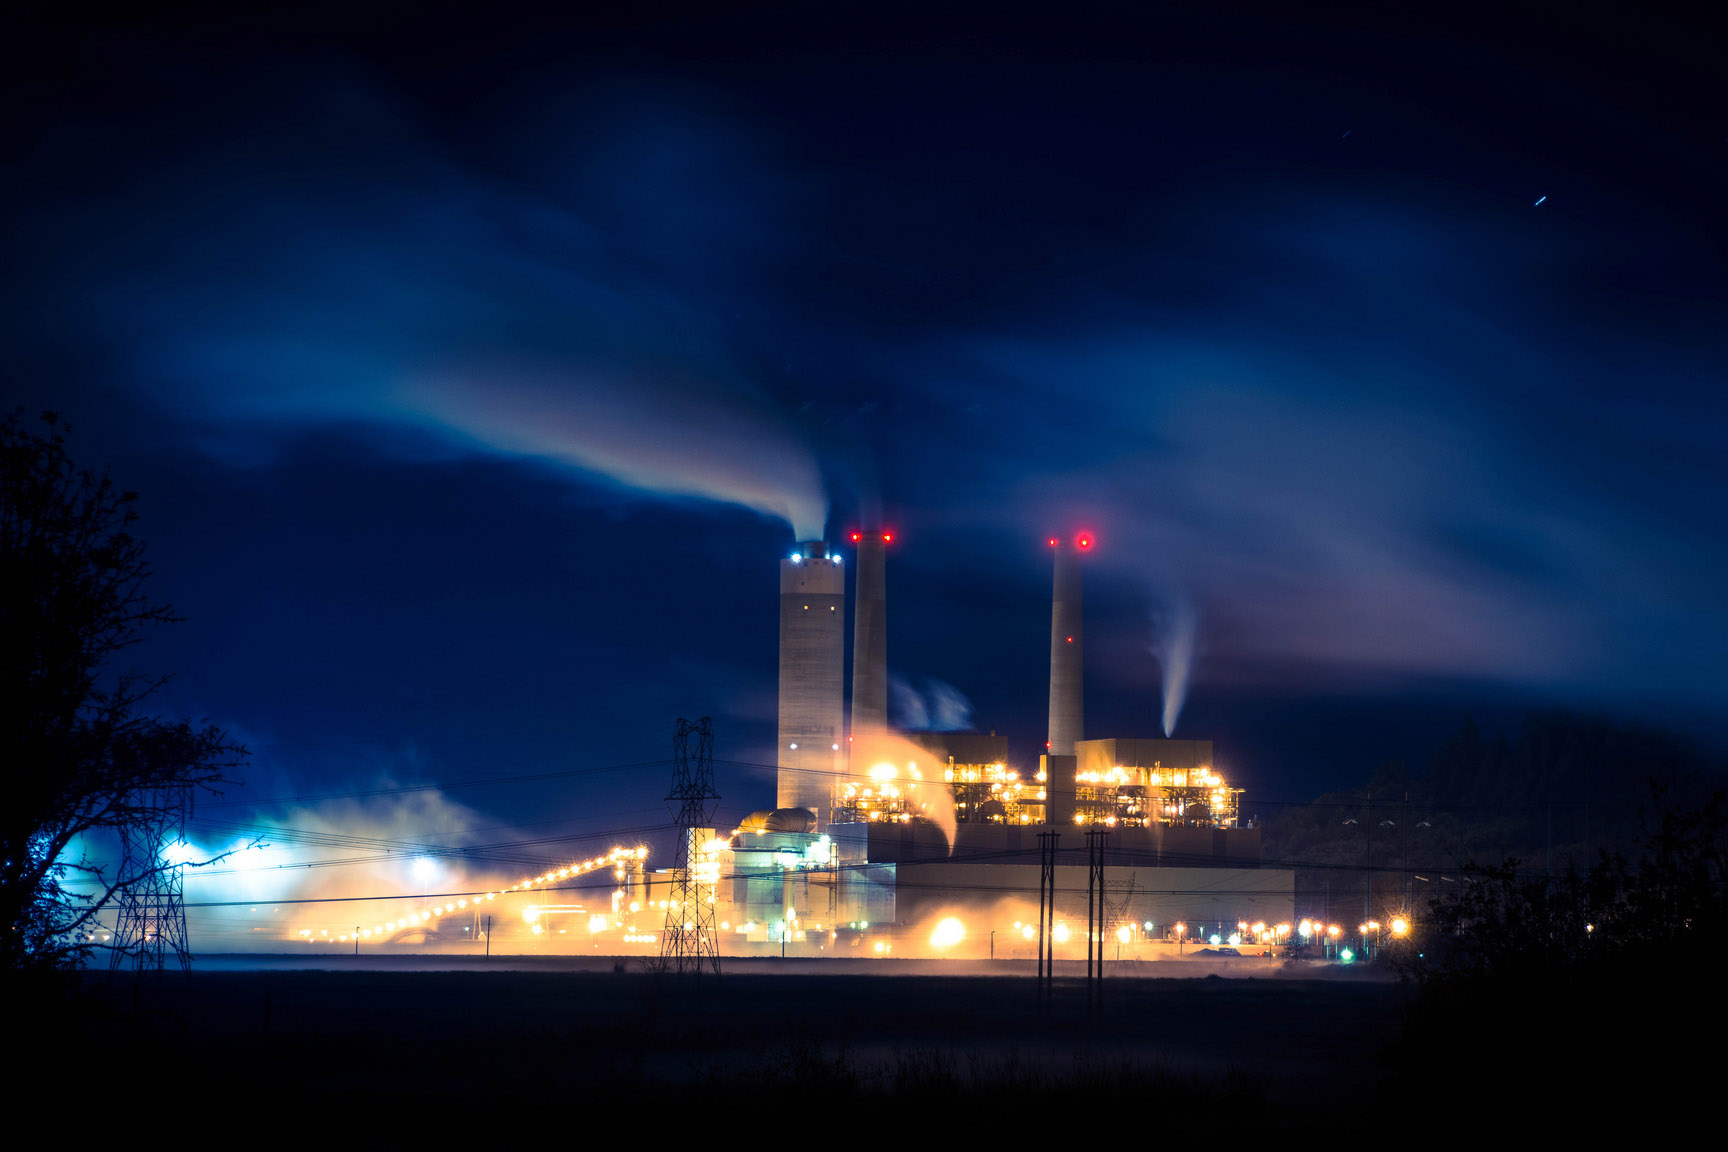 """The Centralia """"Big Hanaford"""" power plant is the only commercial coal-fired power plant left in the state of Washington. Currently, it's coal-fired boilers are set to be decommissioned by 2025. Photo: Kid Clutch via Flickr"""